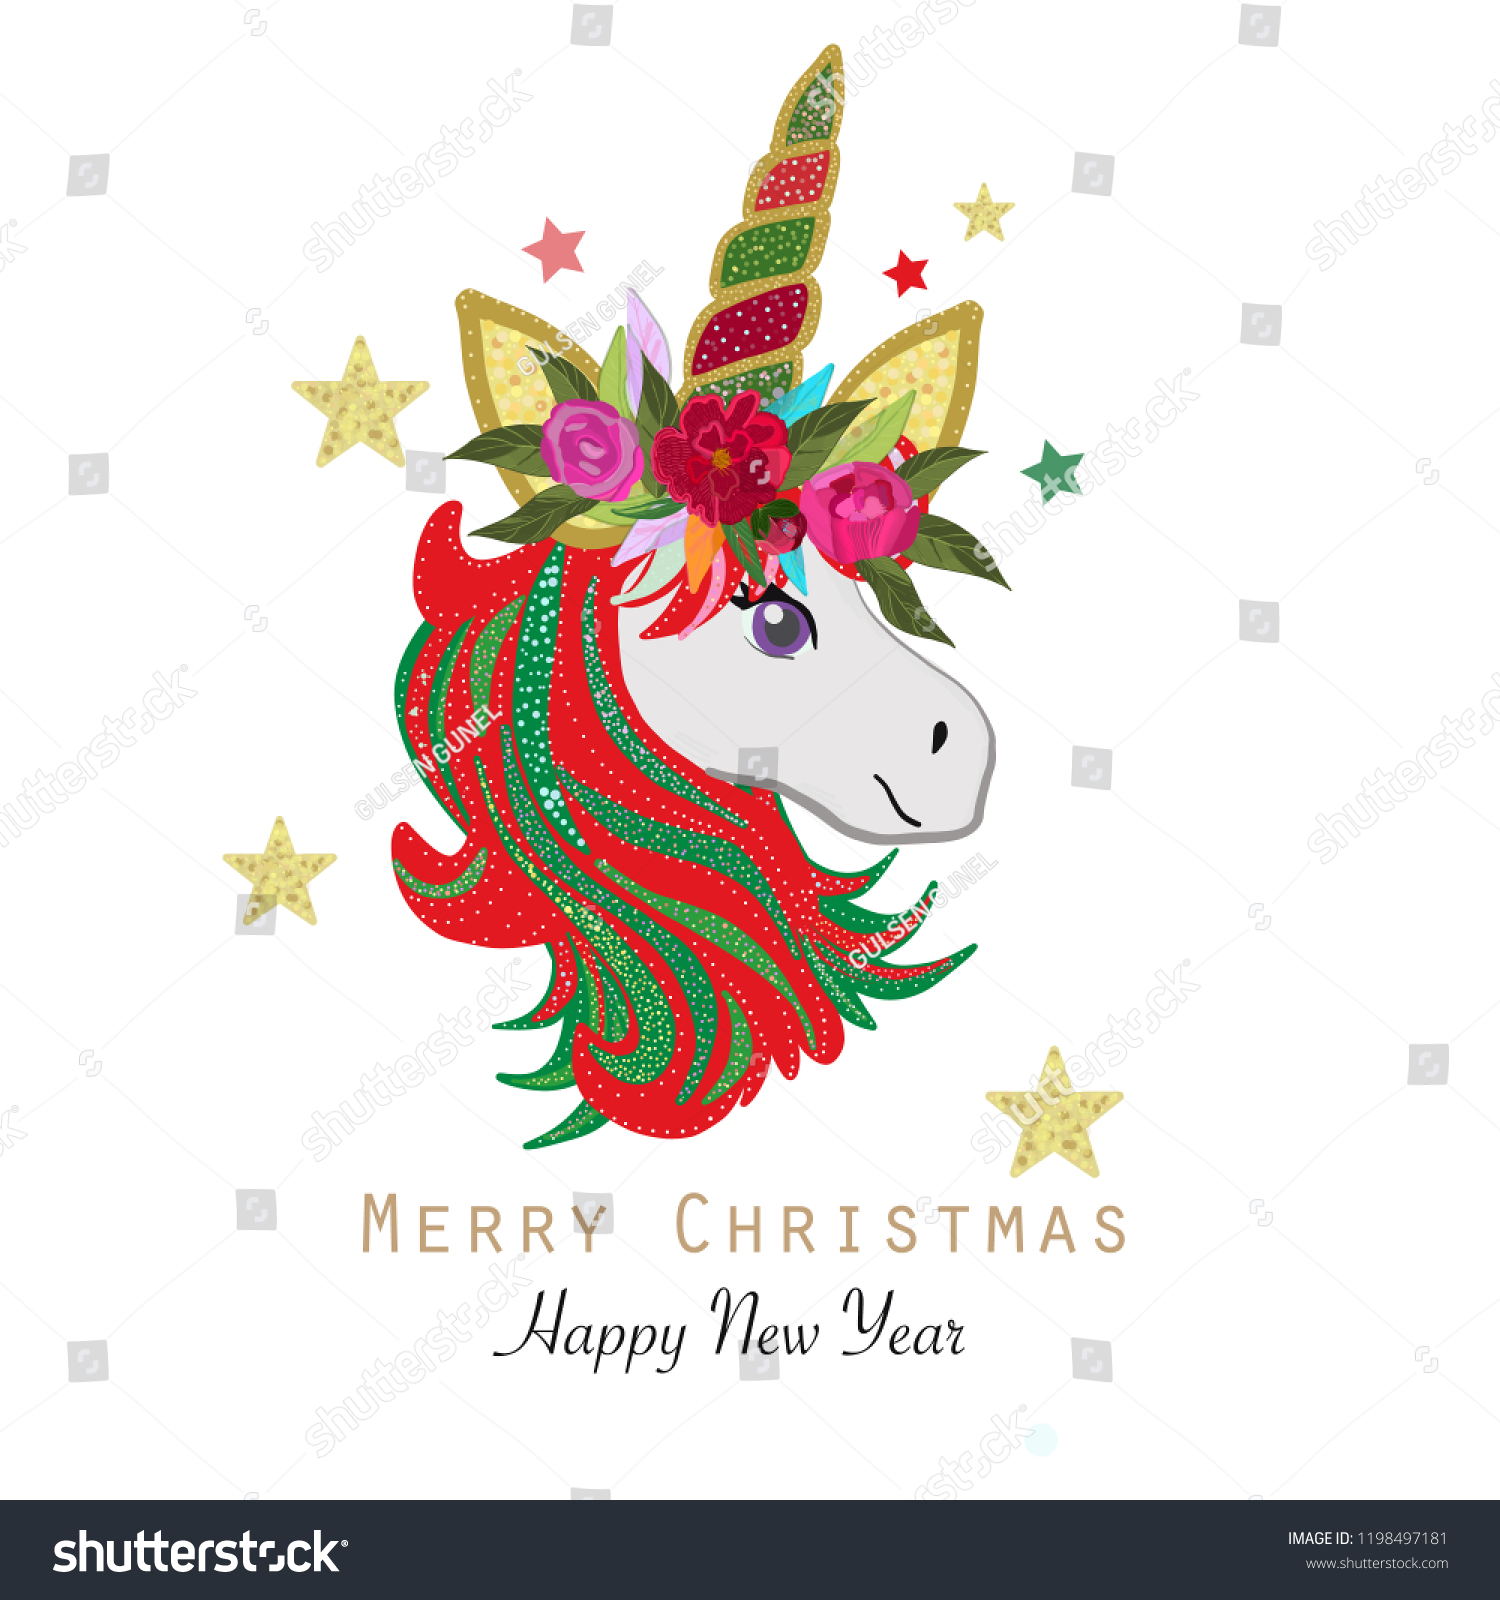 merry christmas magical unicorn happy new year and merry christmas greeting card